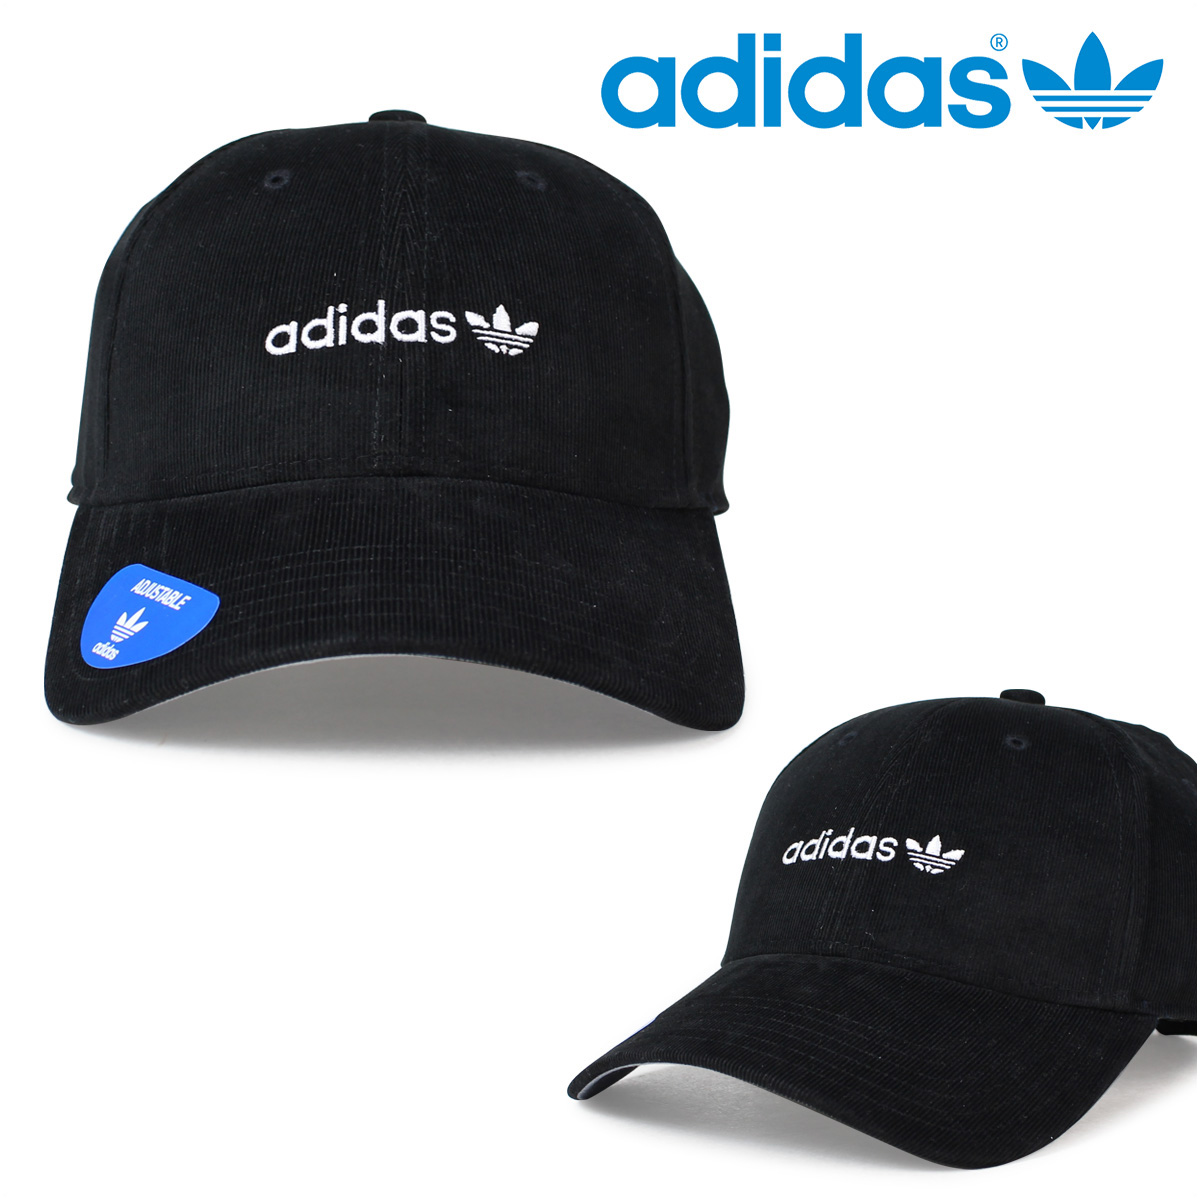 Latest Adidas Originals For Men Black Black Adi E Cap Adi